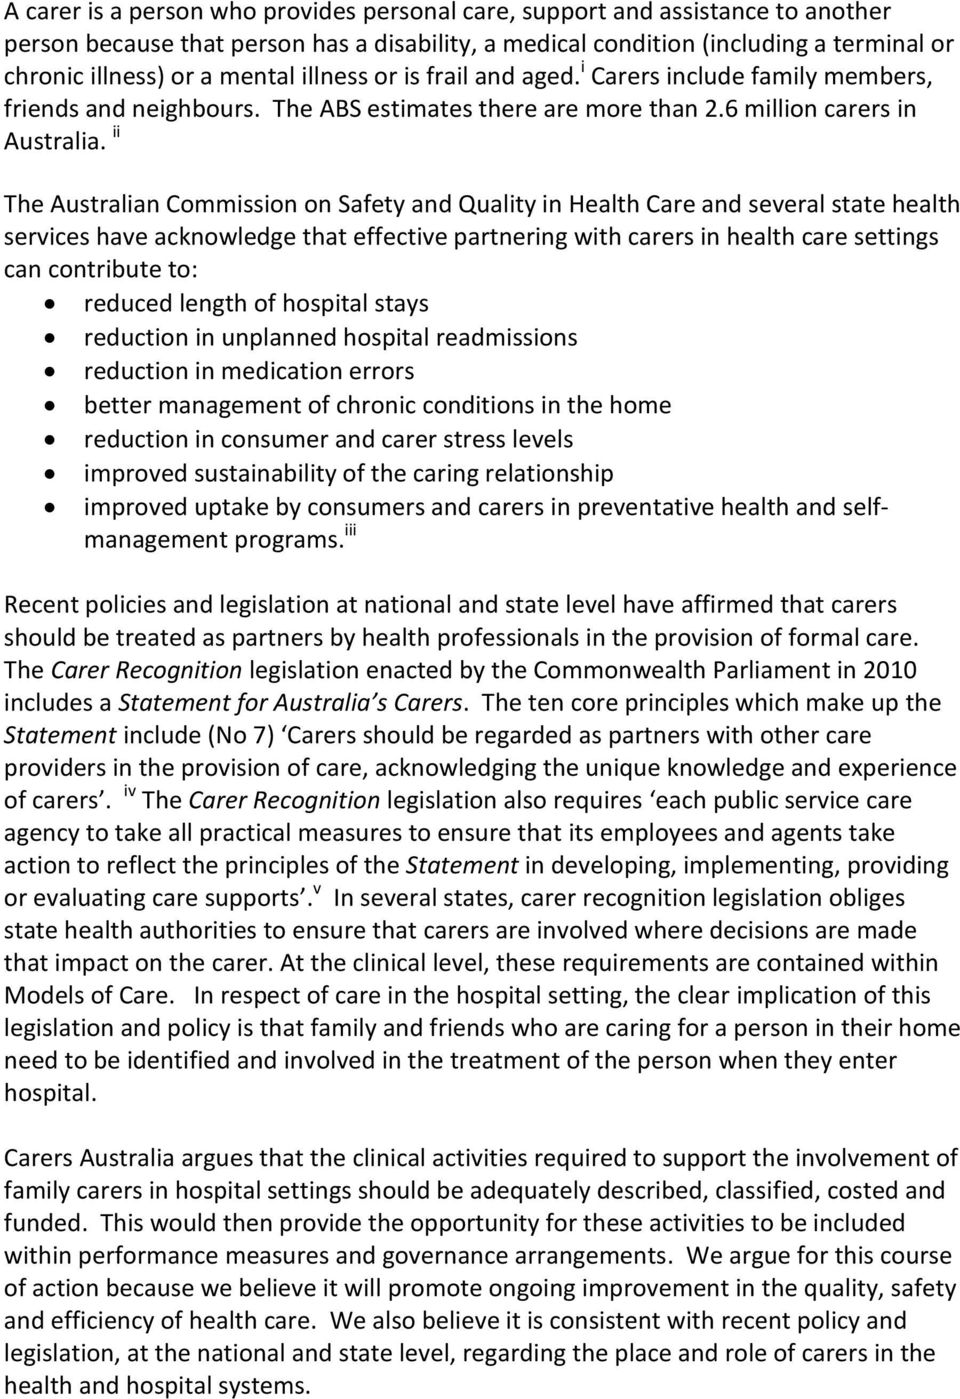 ii The Australian Commission on Safety and Quality in Health Care and several state health services have acknowledge that effective partnering with carers in health care settings can contribute to: